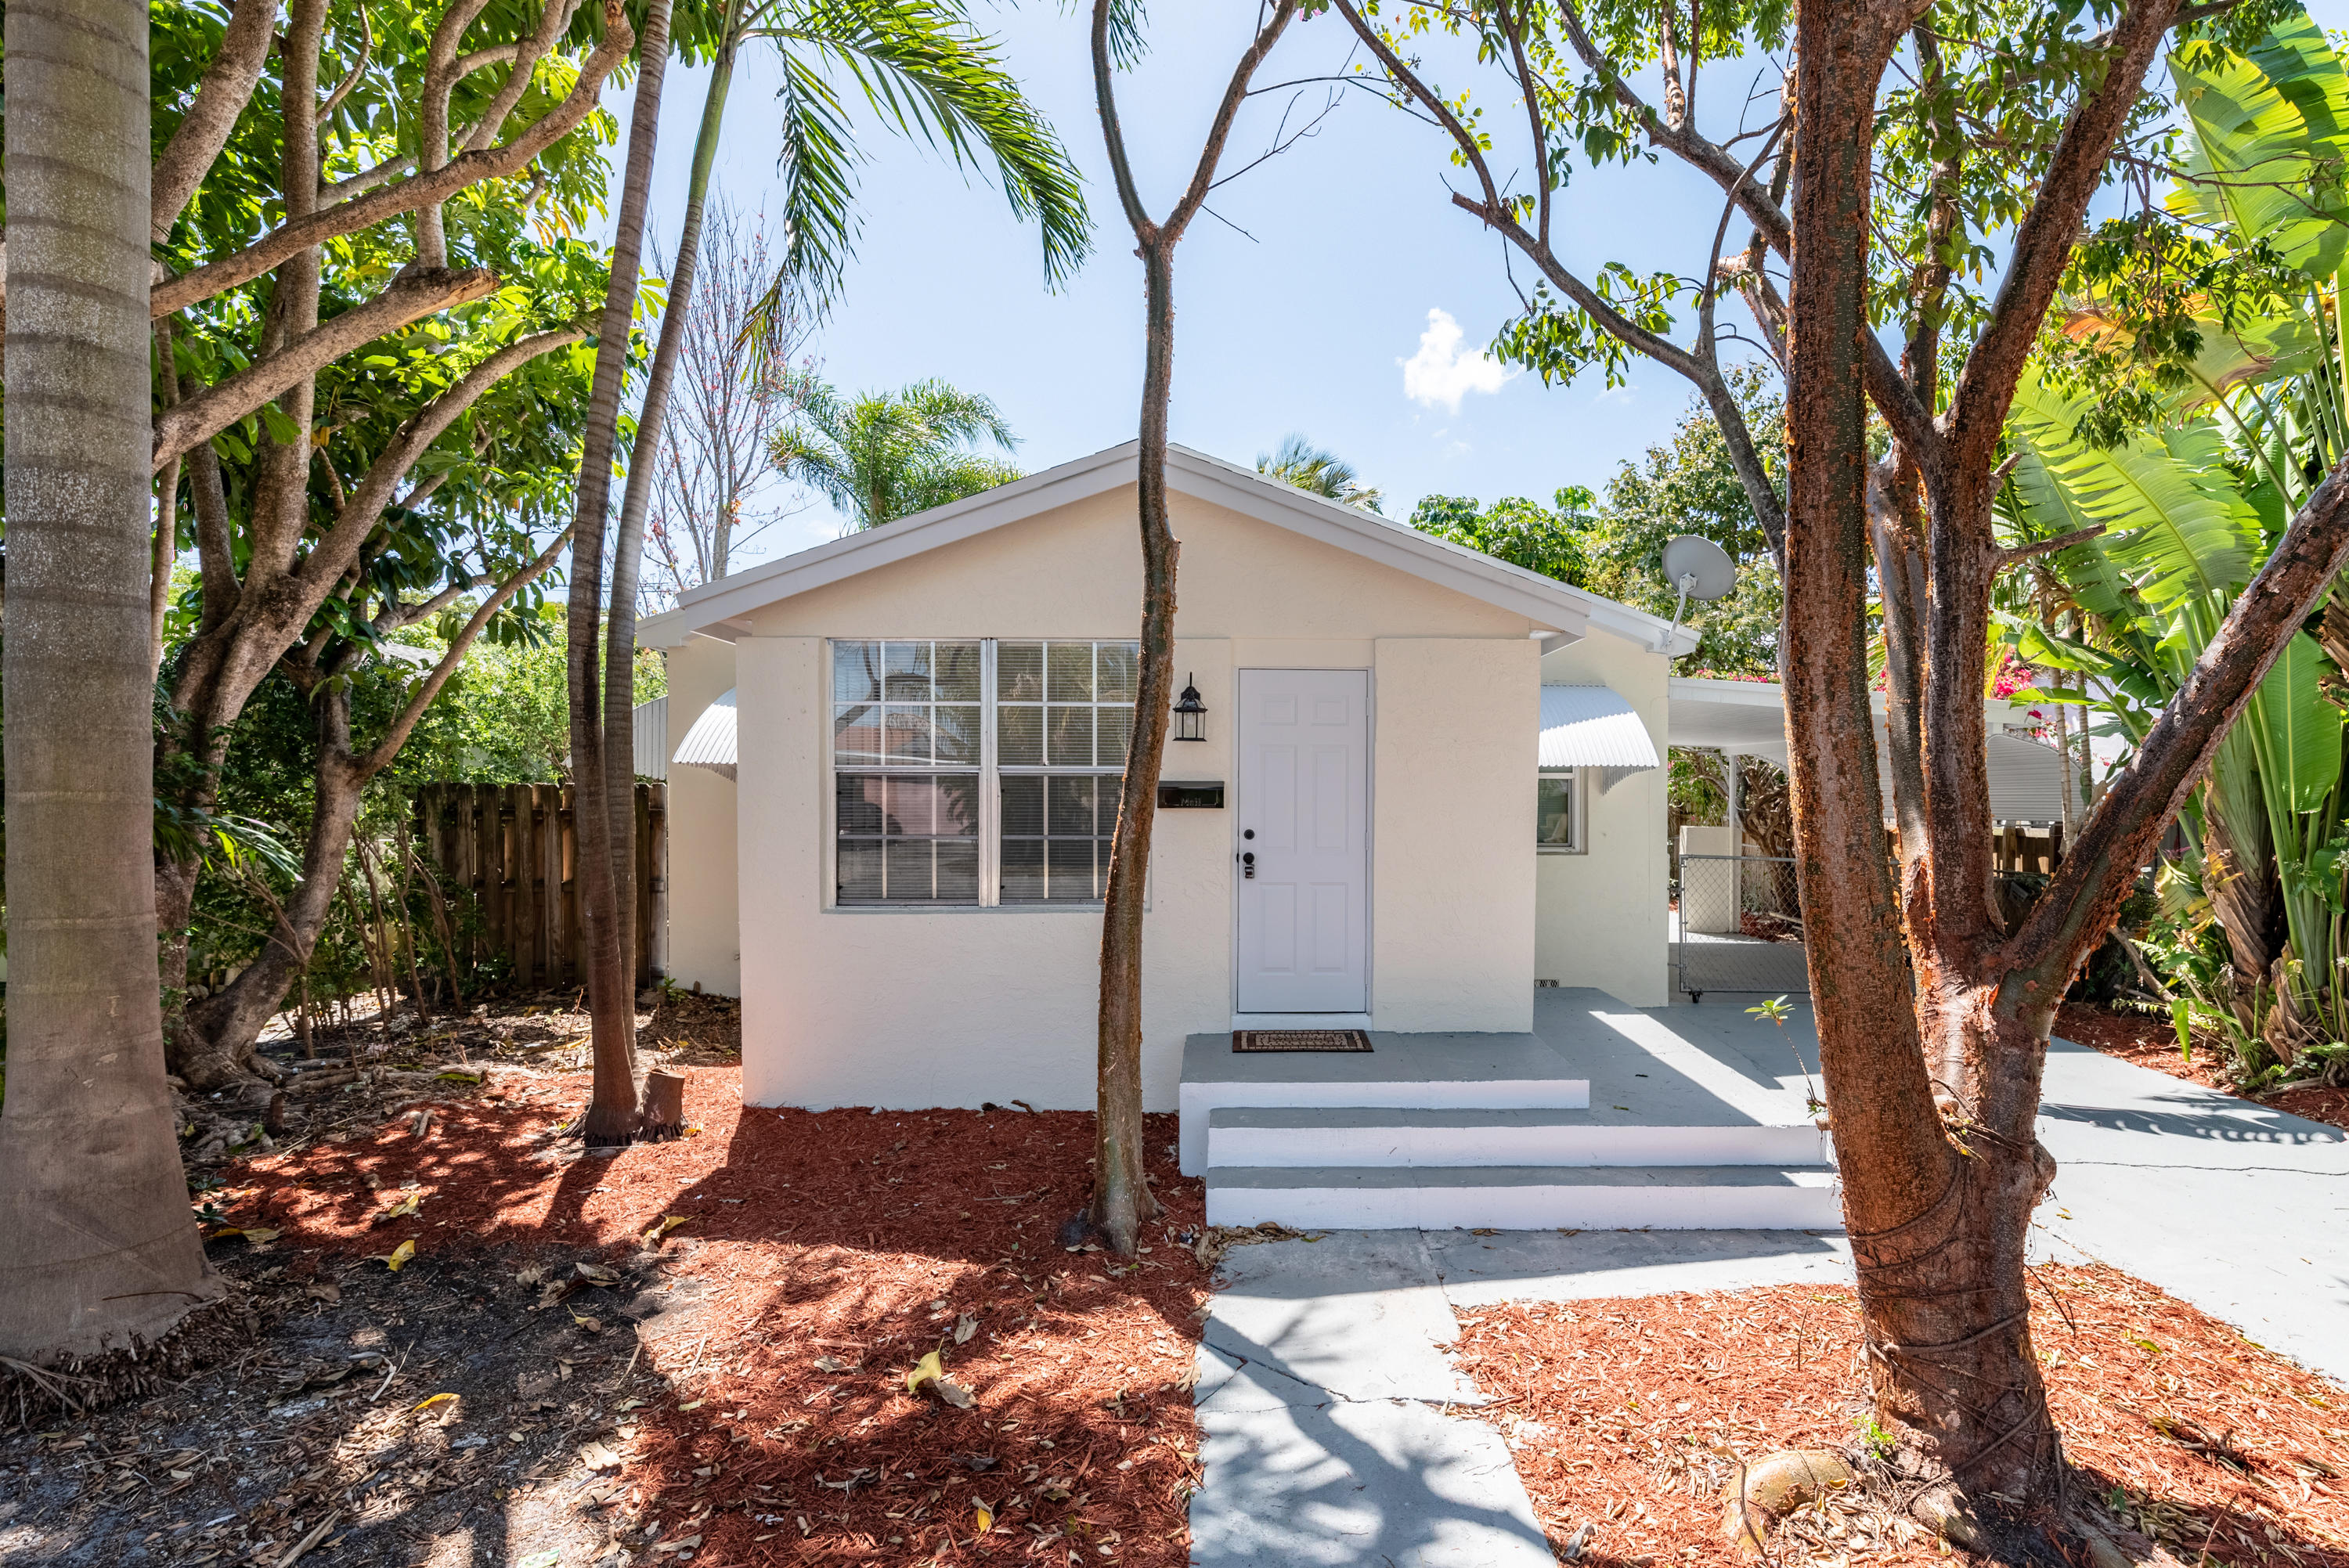 Home for sale in Hollywood Park Hollywood Florida